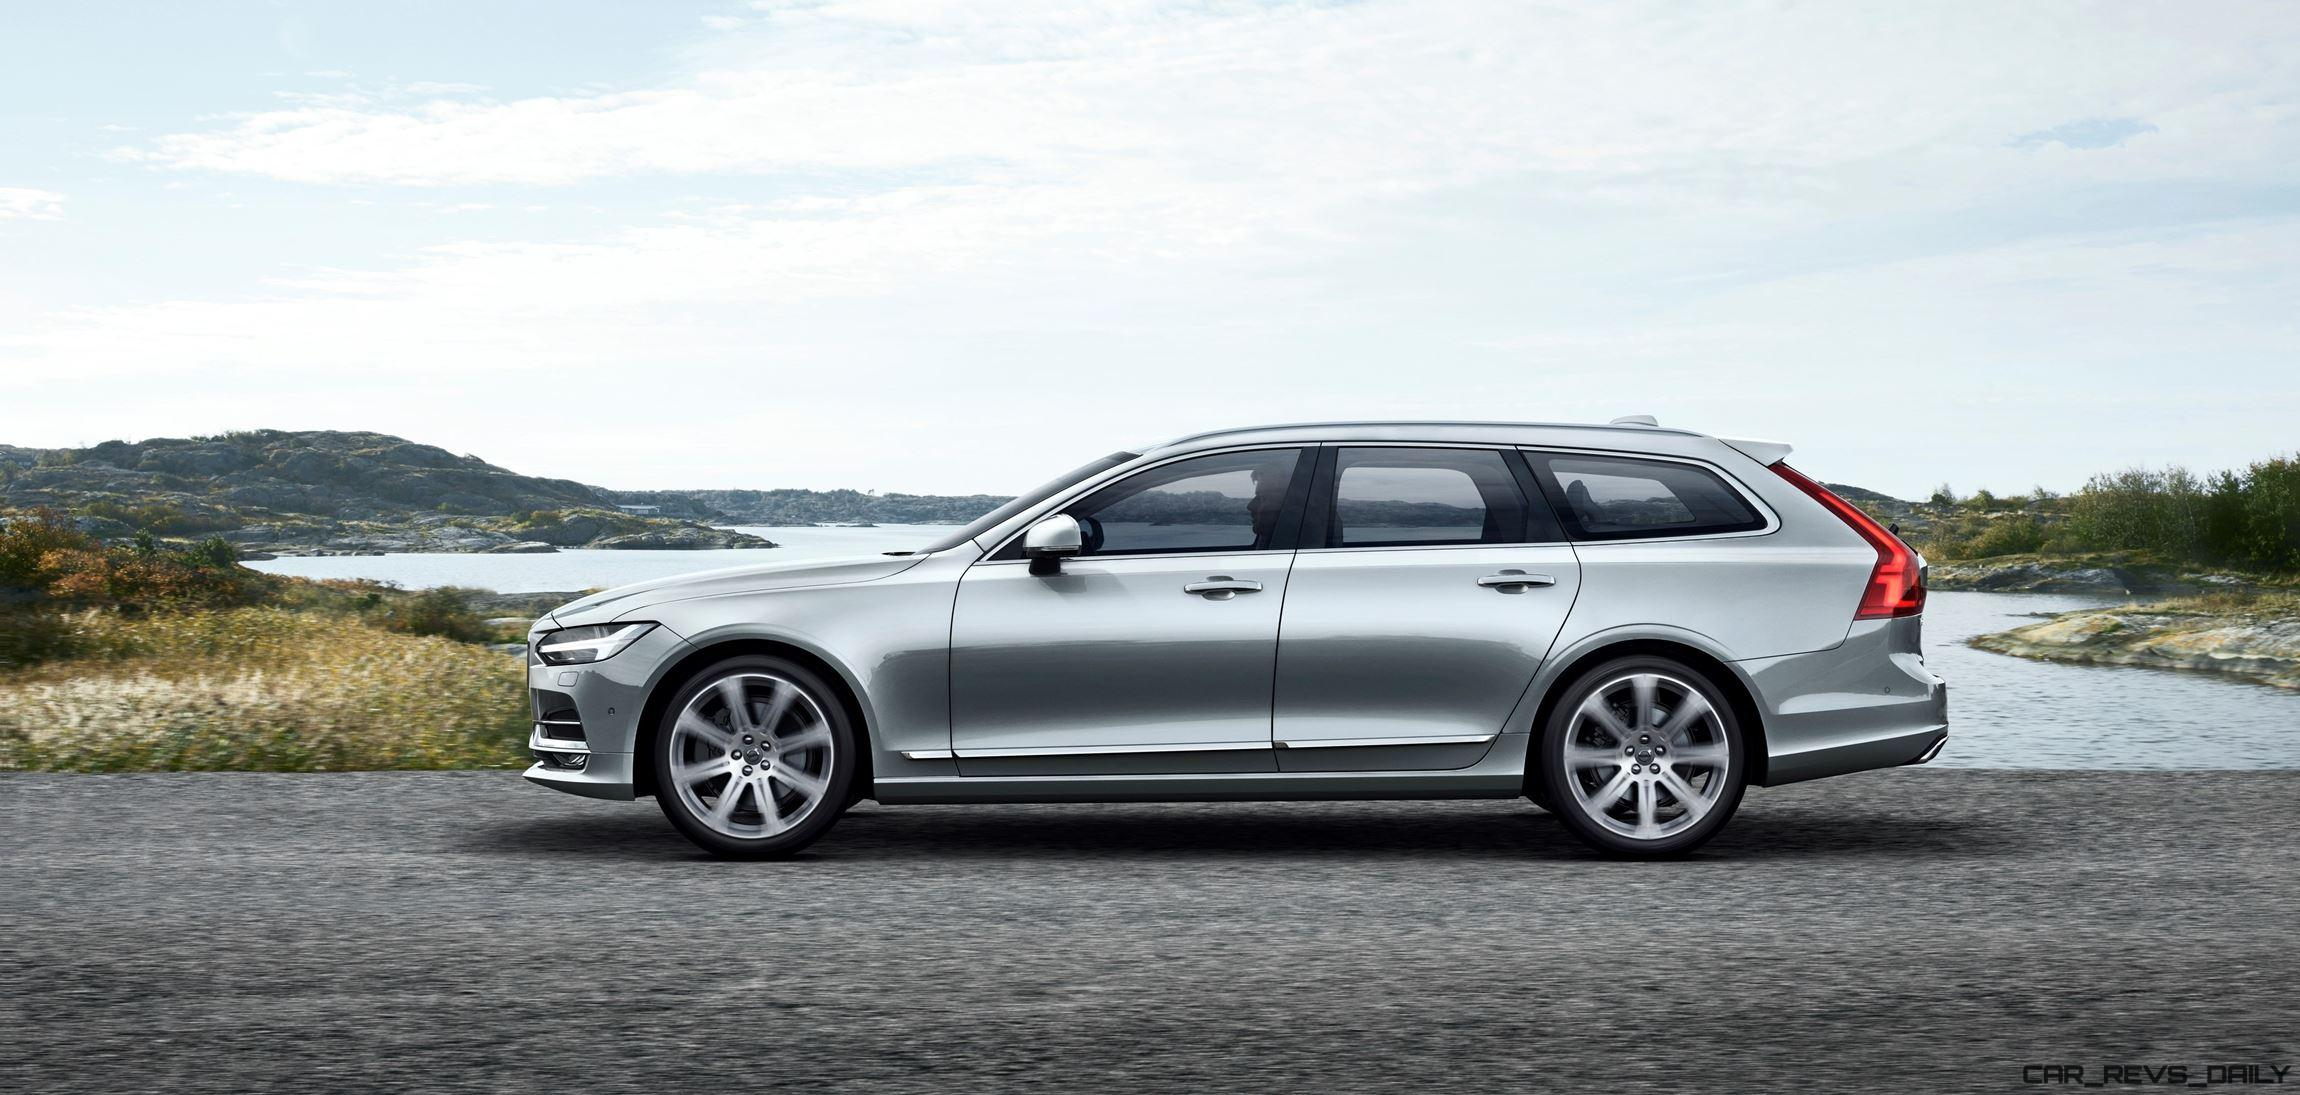 2017 volvo v90 debuts 400hp t8 engine low roof look marks return to form. Black Bedroom Furniture Sets. Home Design Ideas